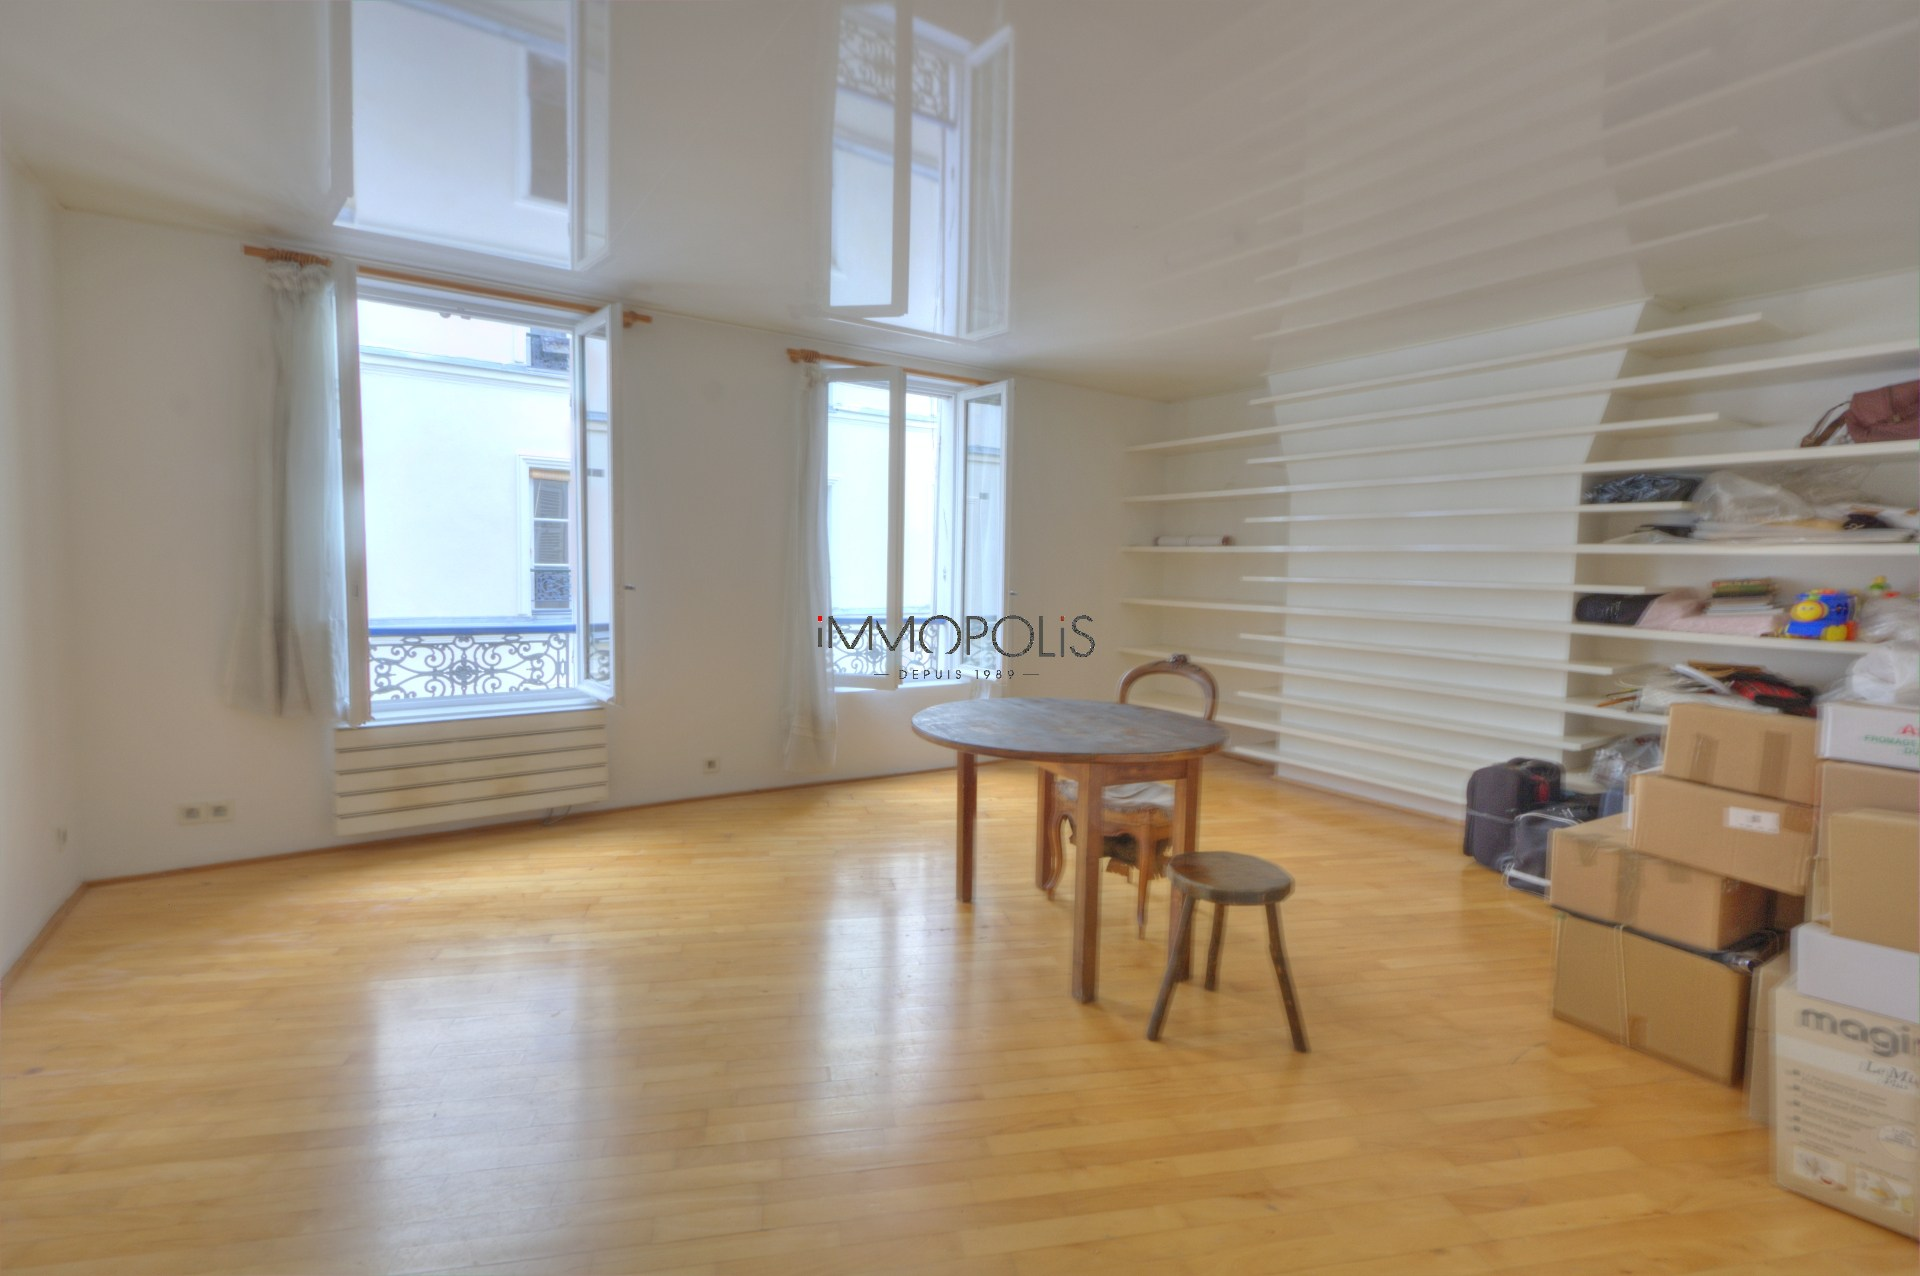 In the heart of the Abbesses, rue Berthe, beautiful 2 room apartment with a perfect plan, in good condition, crossing onto a quiet street and open courtyard! 8